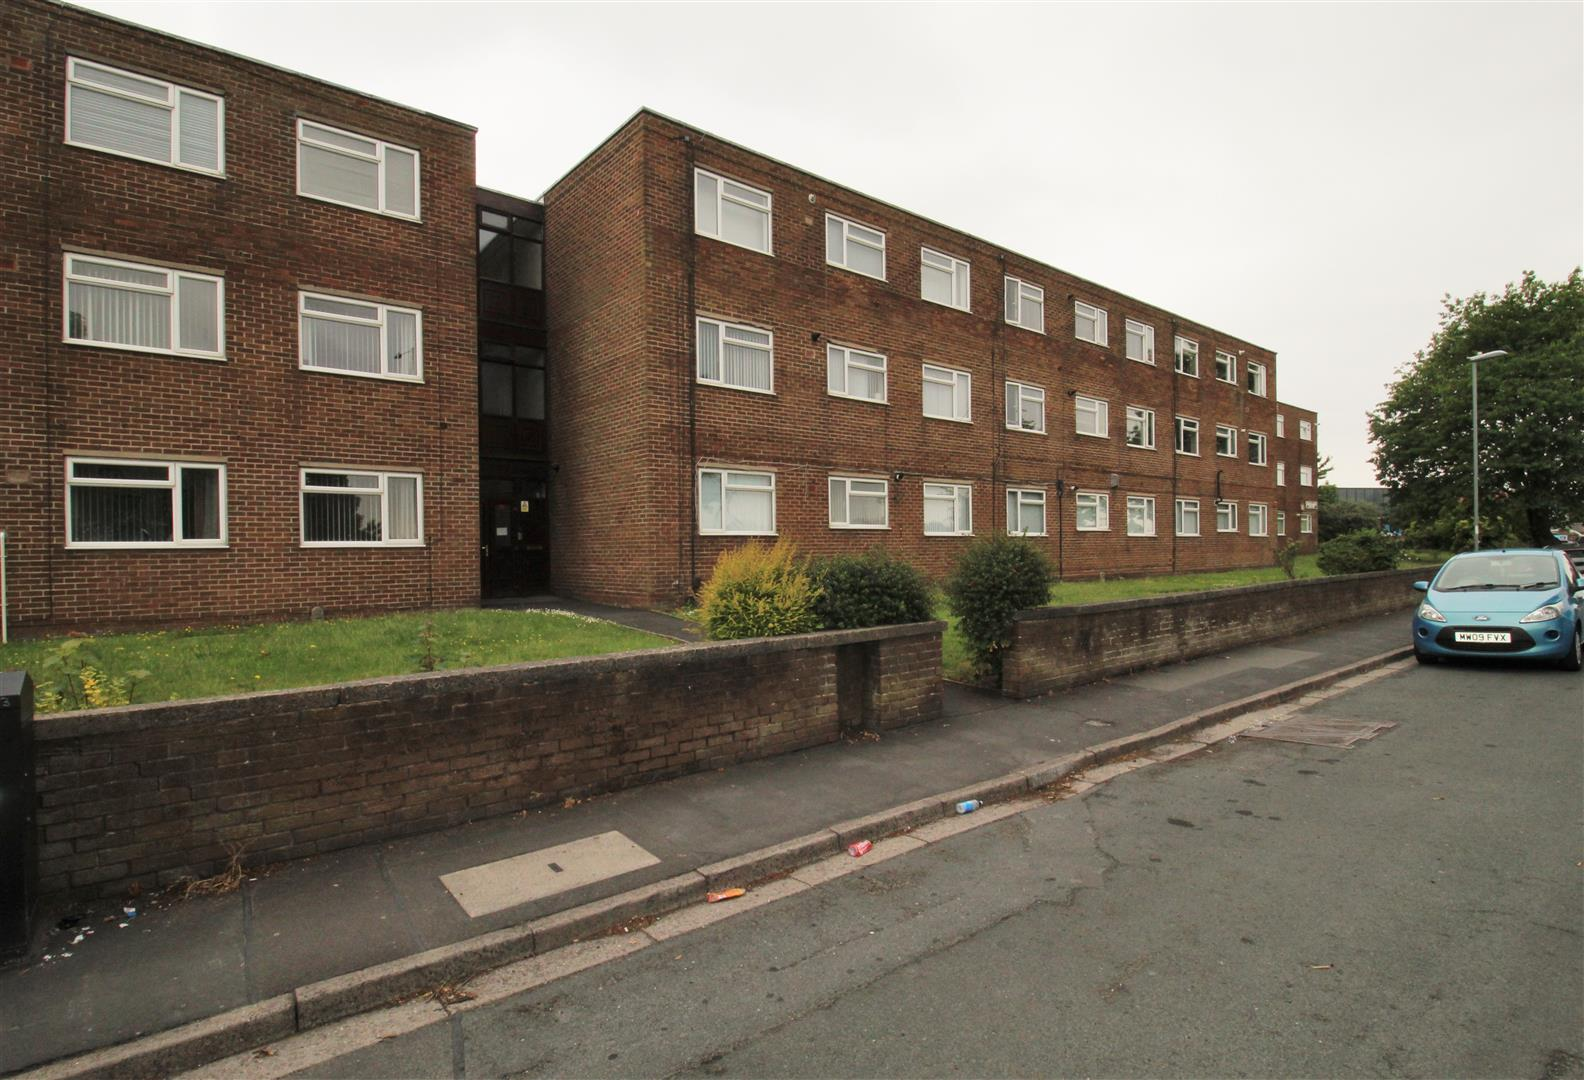 1 Bedroom, Flat - Second Floor, Moor Court, Liverpool